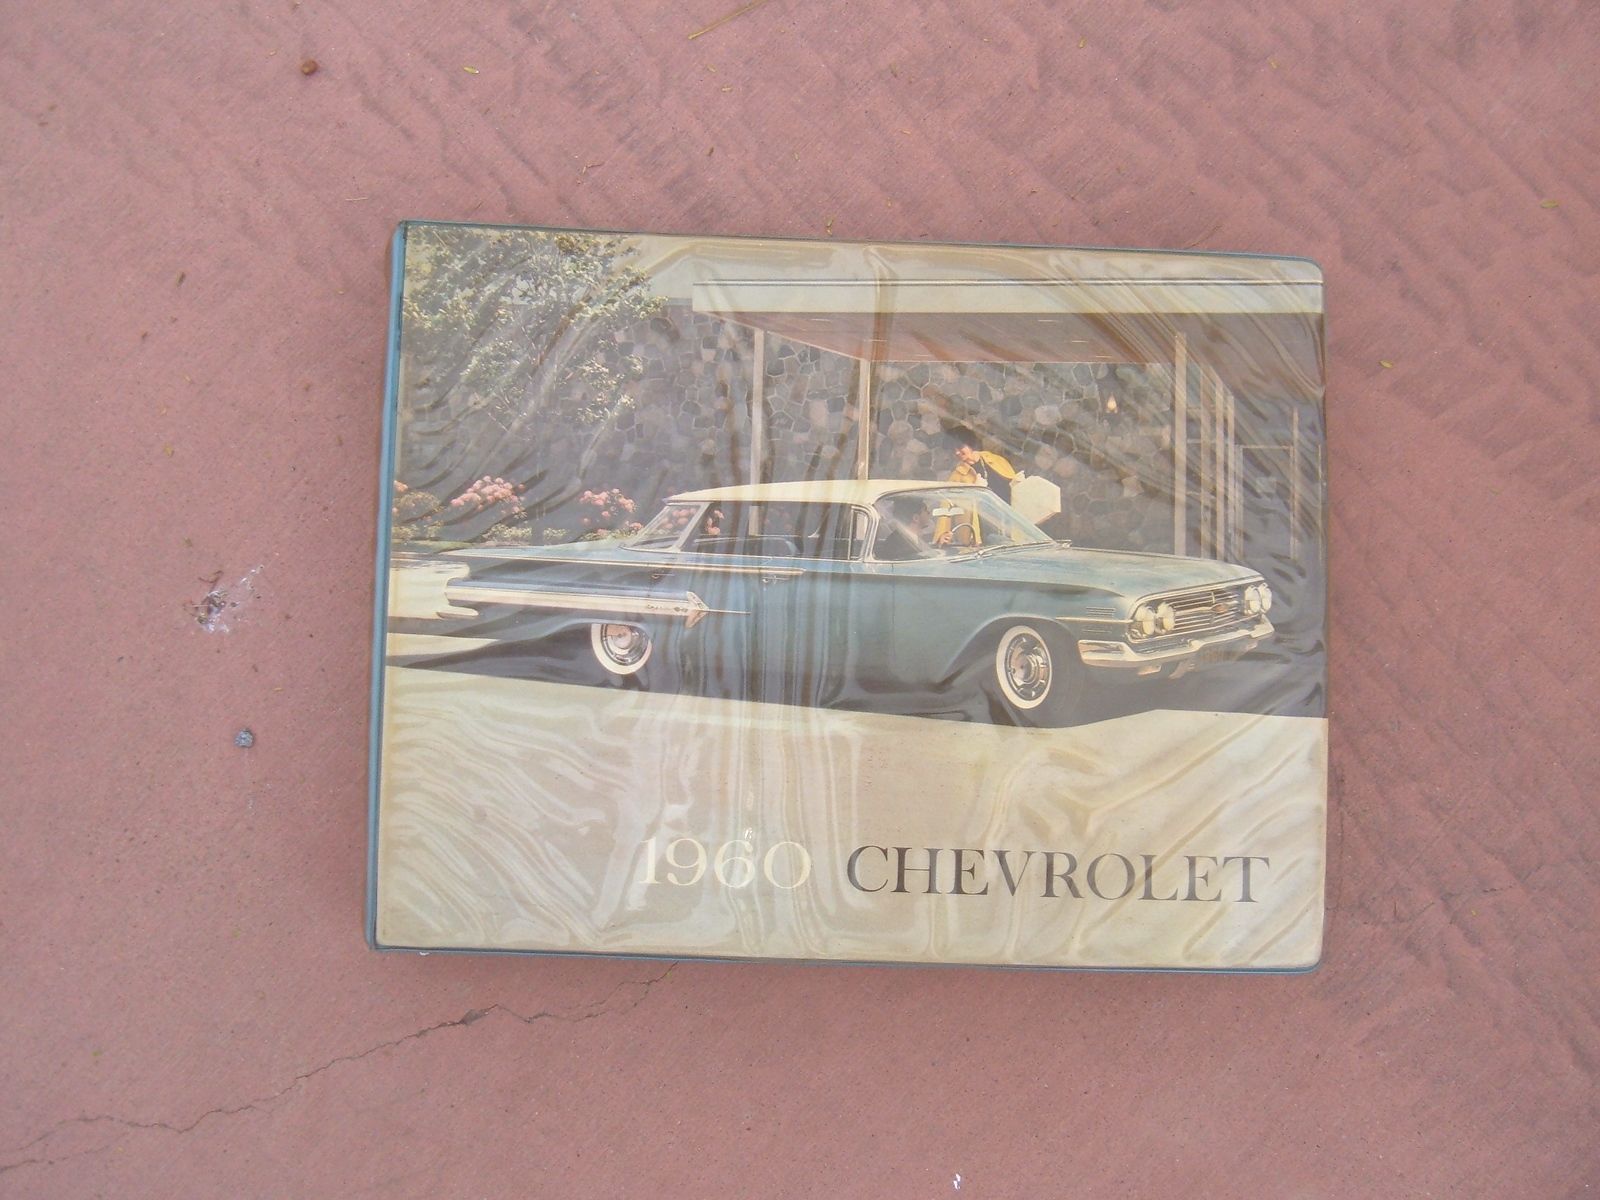 1960 Chevrolet Dealer Showroom Album Corvette corvair impala (z 60chevydealerbook)